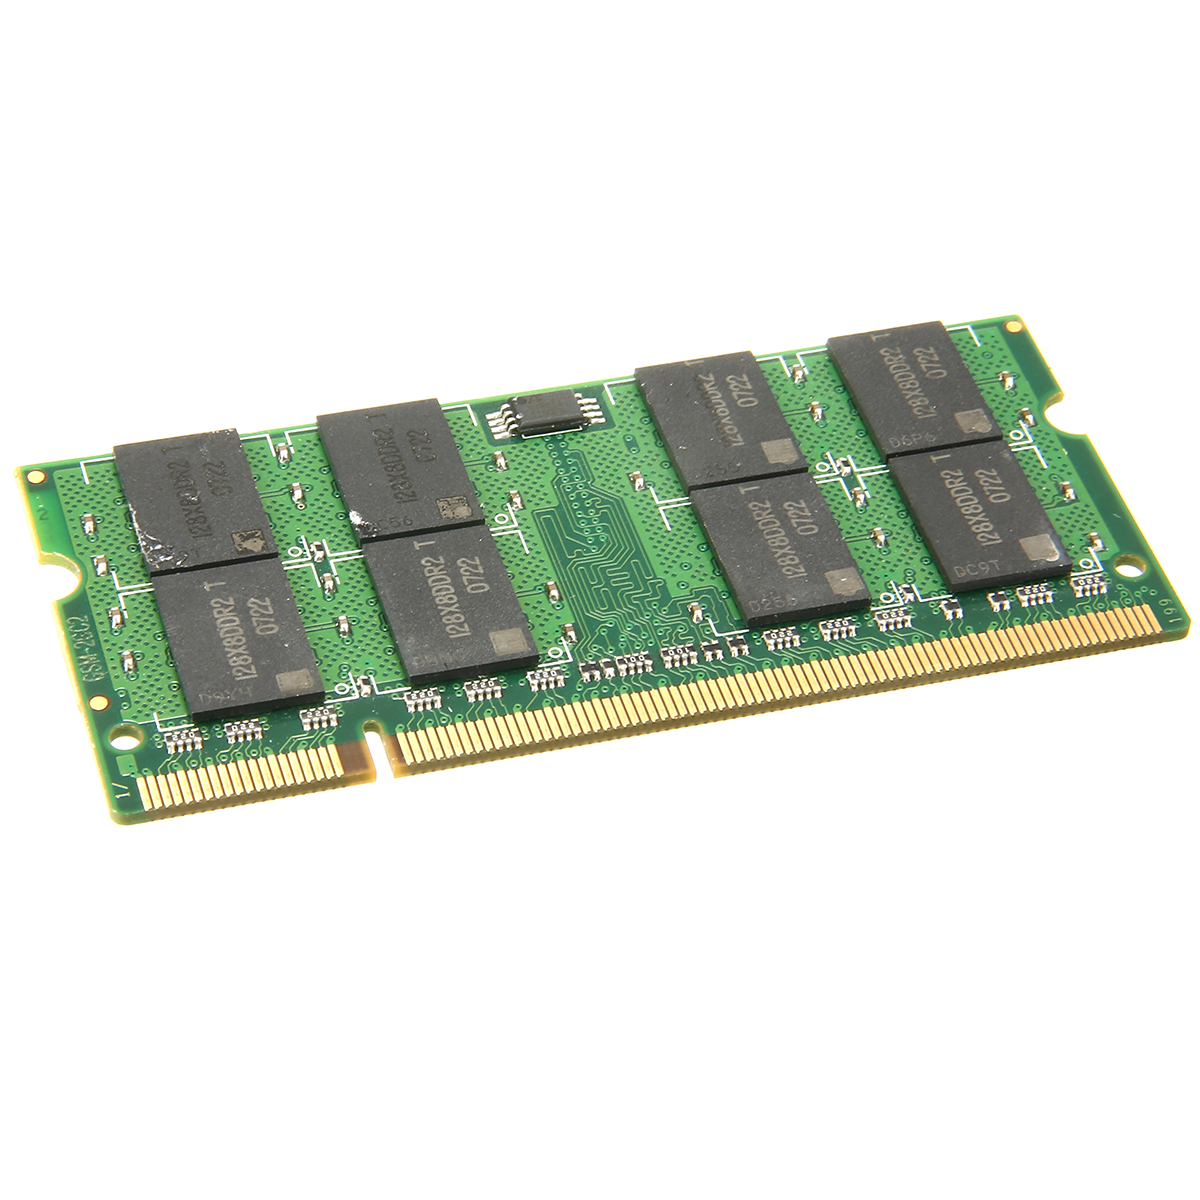 Pohiks 1pc 2GB DDR 800 800MHz PC2-6400 200pin Non-ECC Desktop SODIMM Memory RAMs FOR Computer Notebook Parts